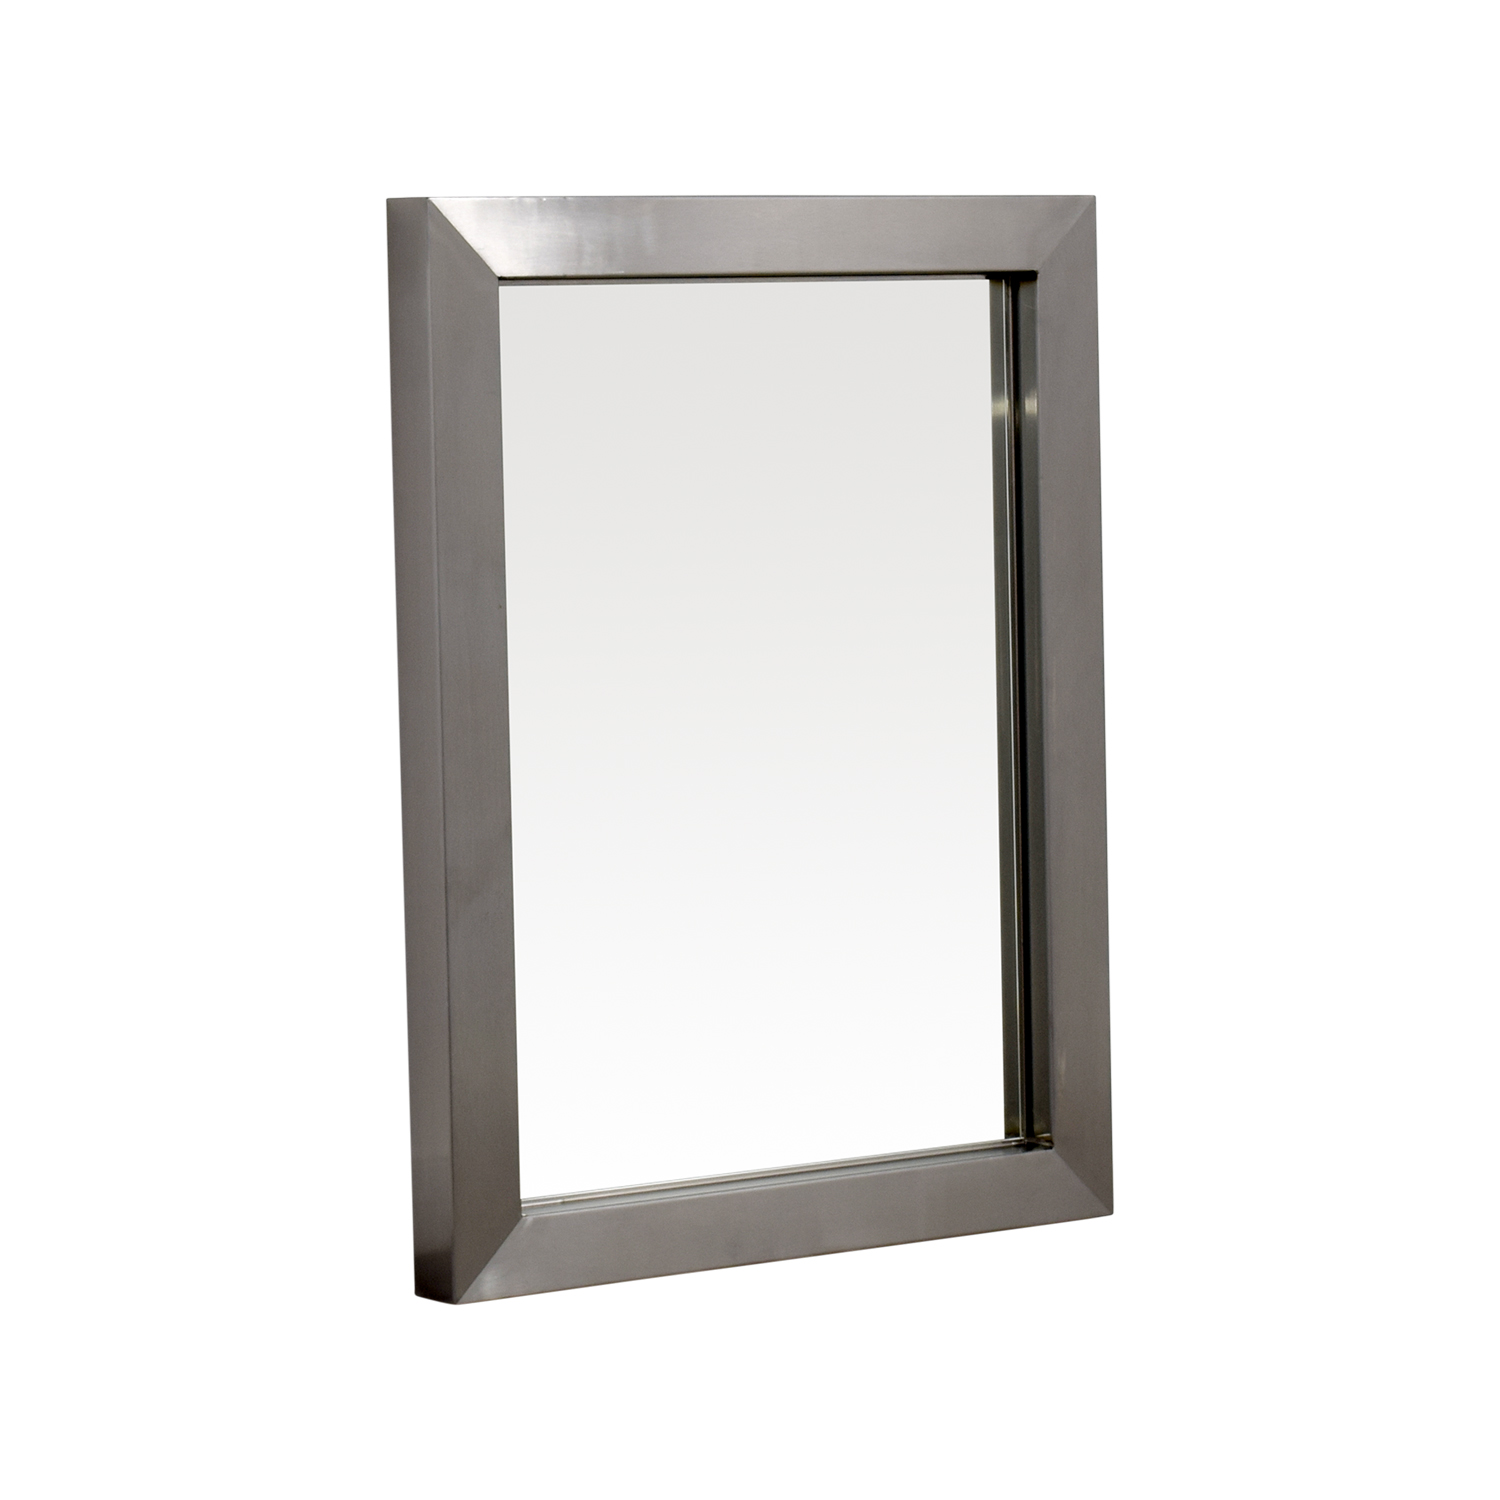 Room & Board Industry Mirror / Mirrors